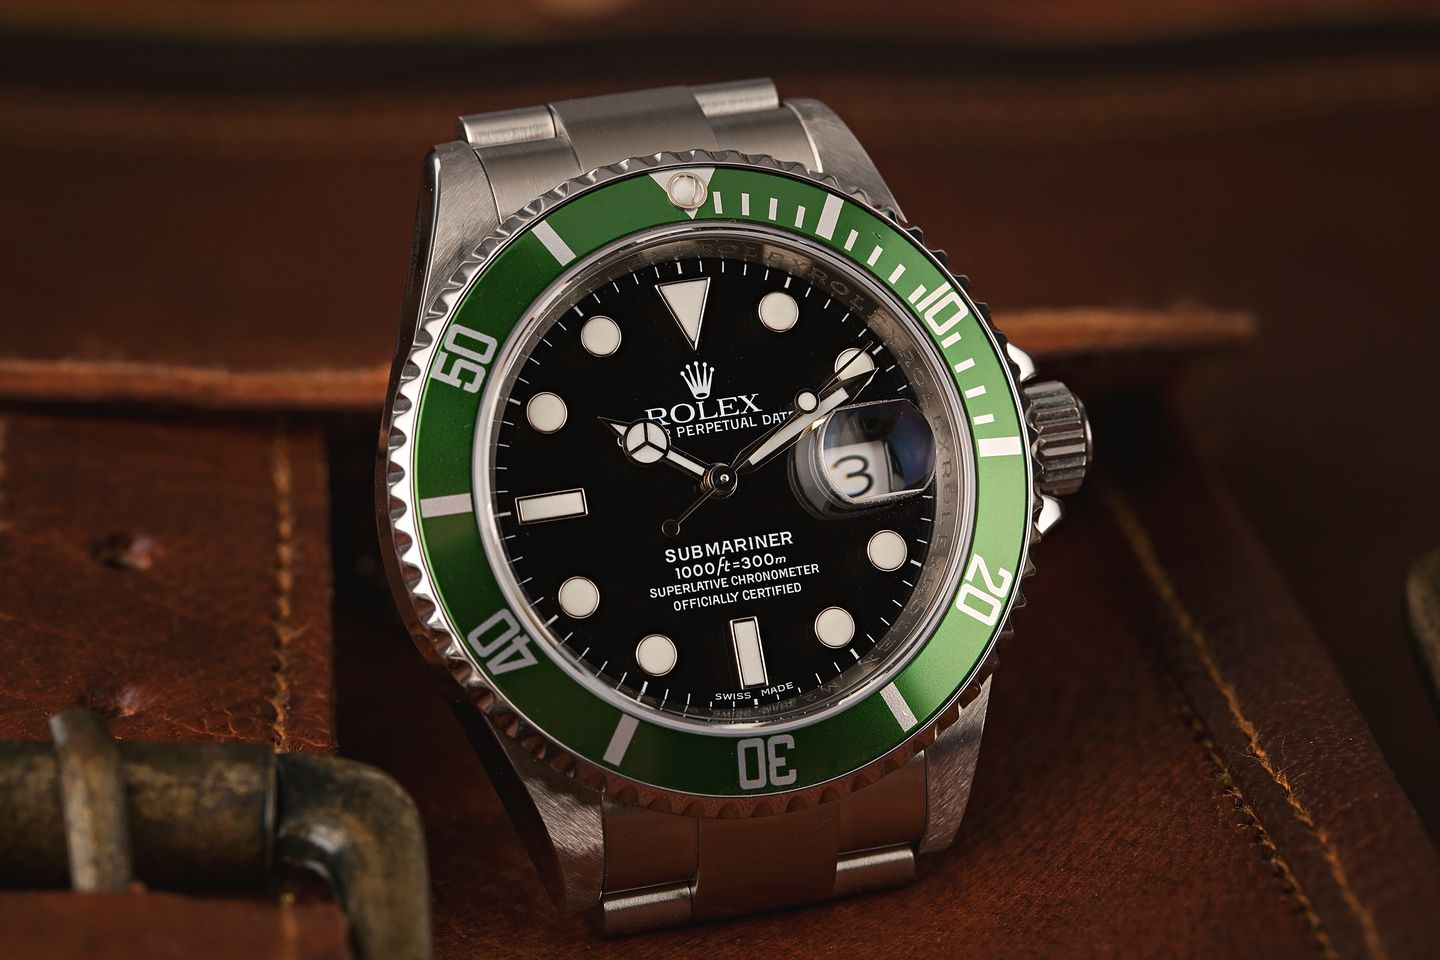 Rolex Watches for Women Who Dive Green Submariner 16610LV Kermit